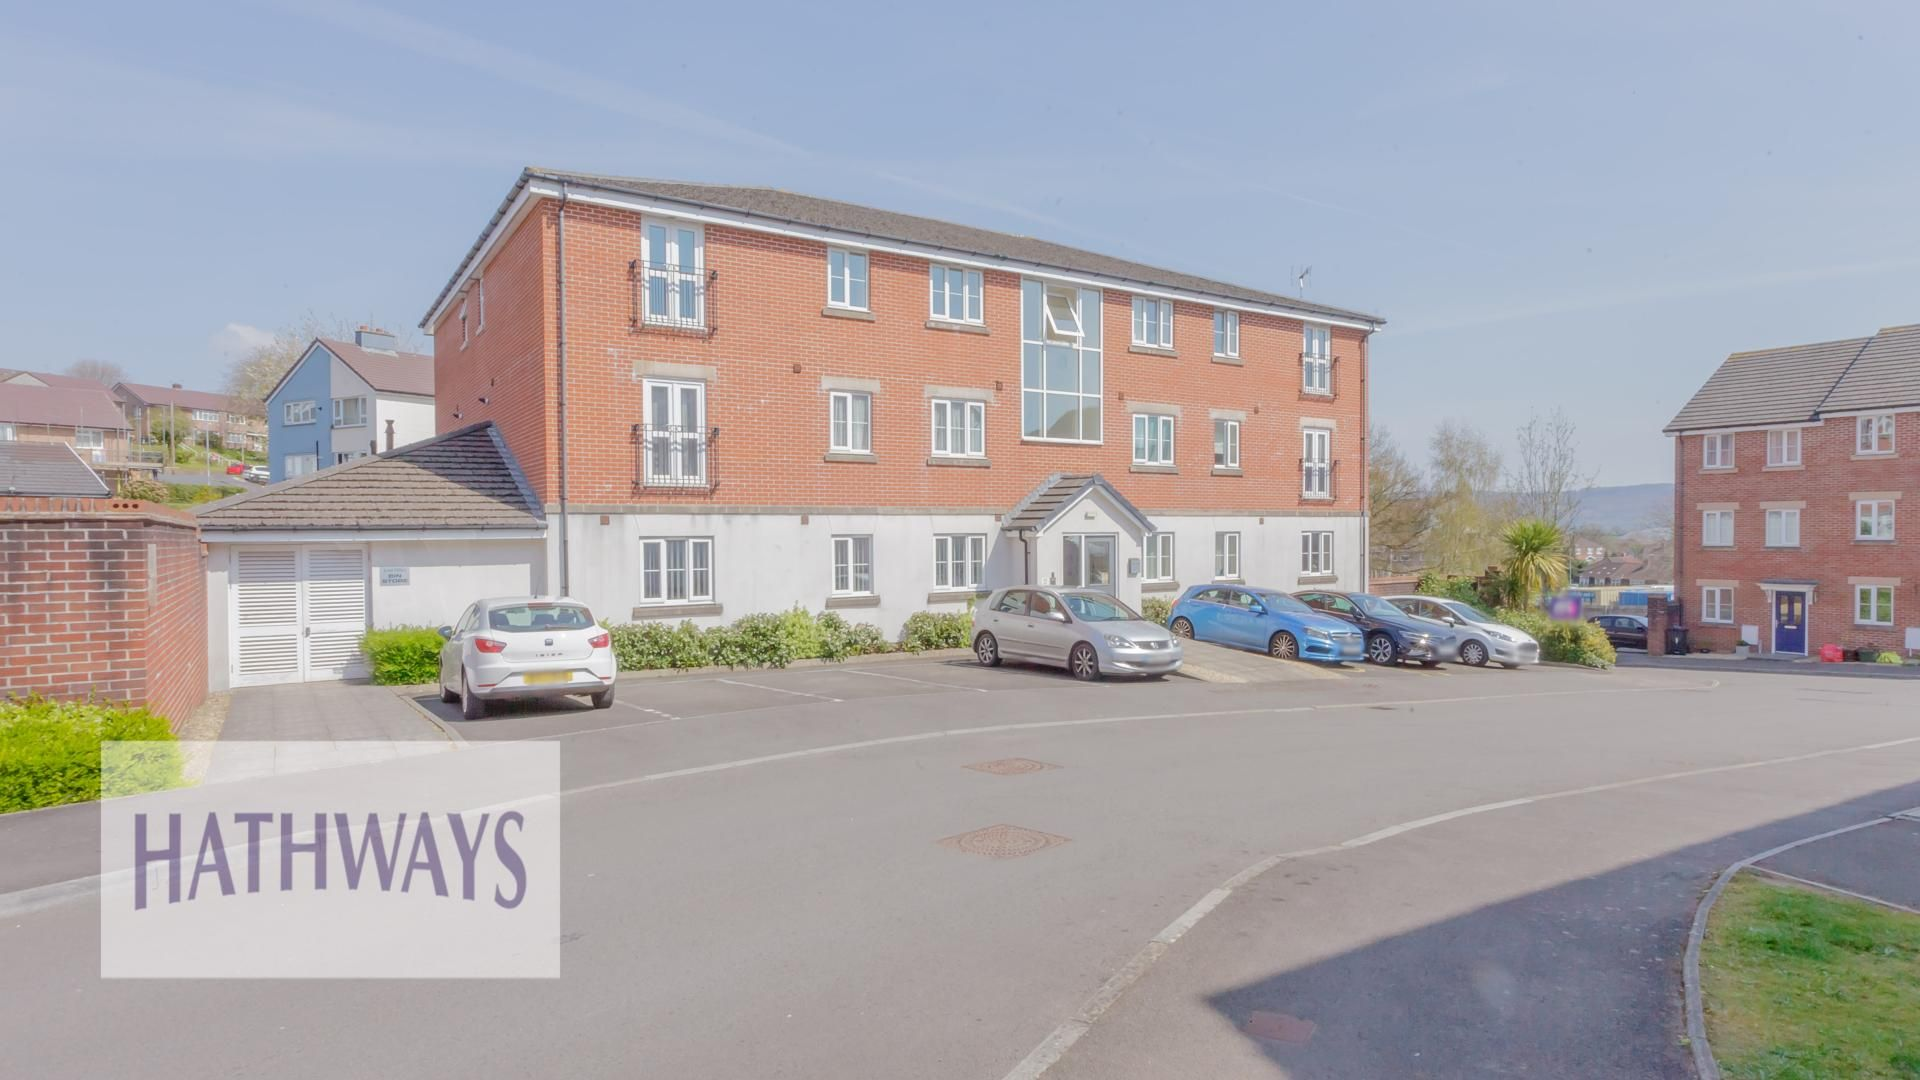 2 bed flat for sale, NP18